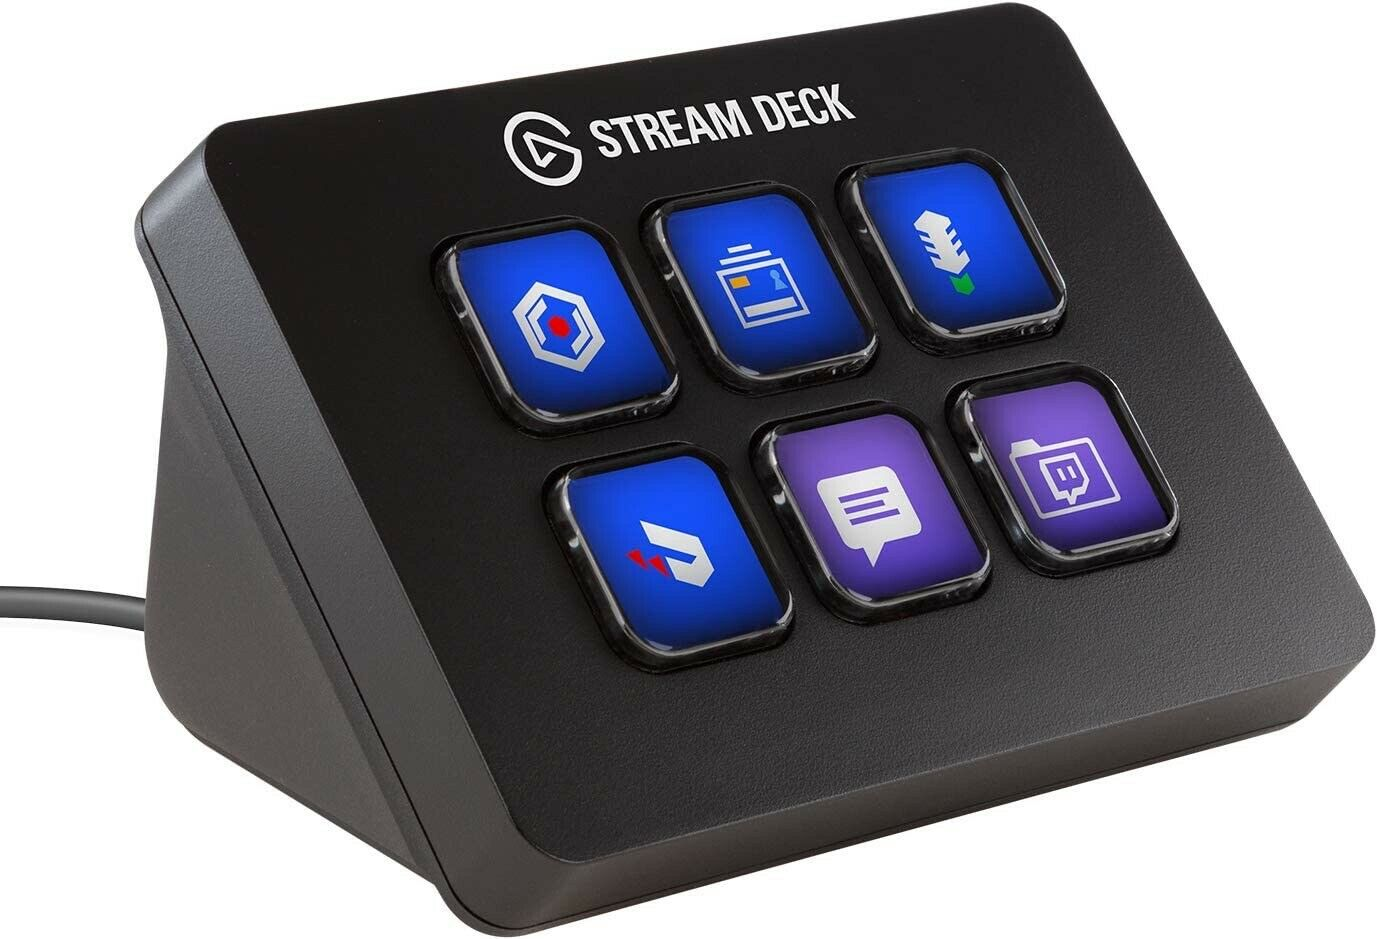 New Pro Stream Deck Gaming Youtube Streaming Controller Customizable LCD Keys UK